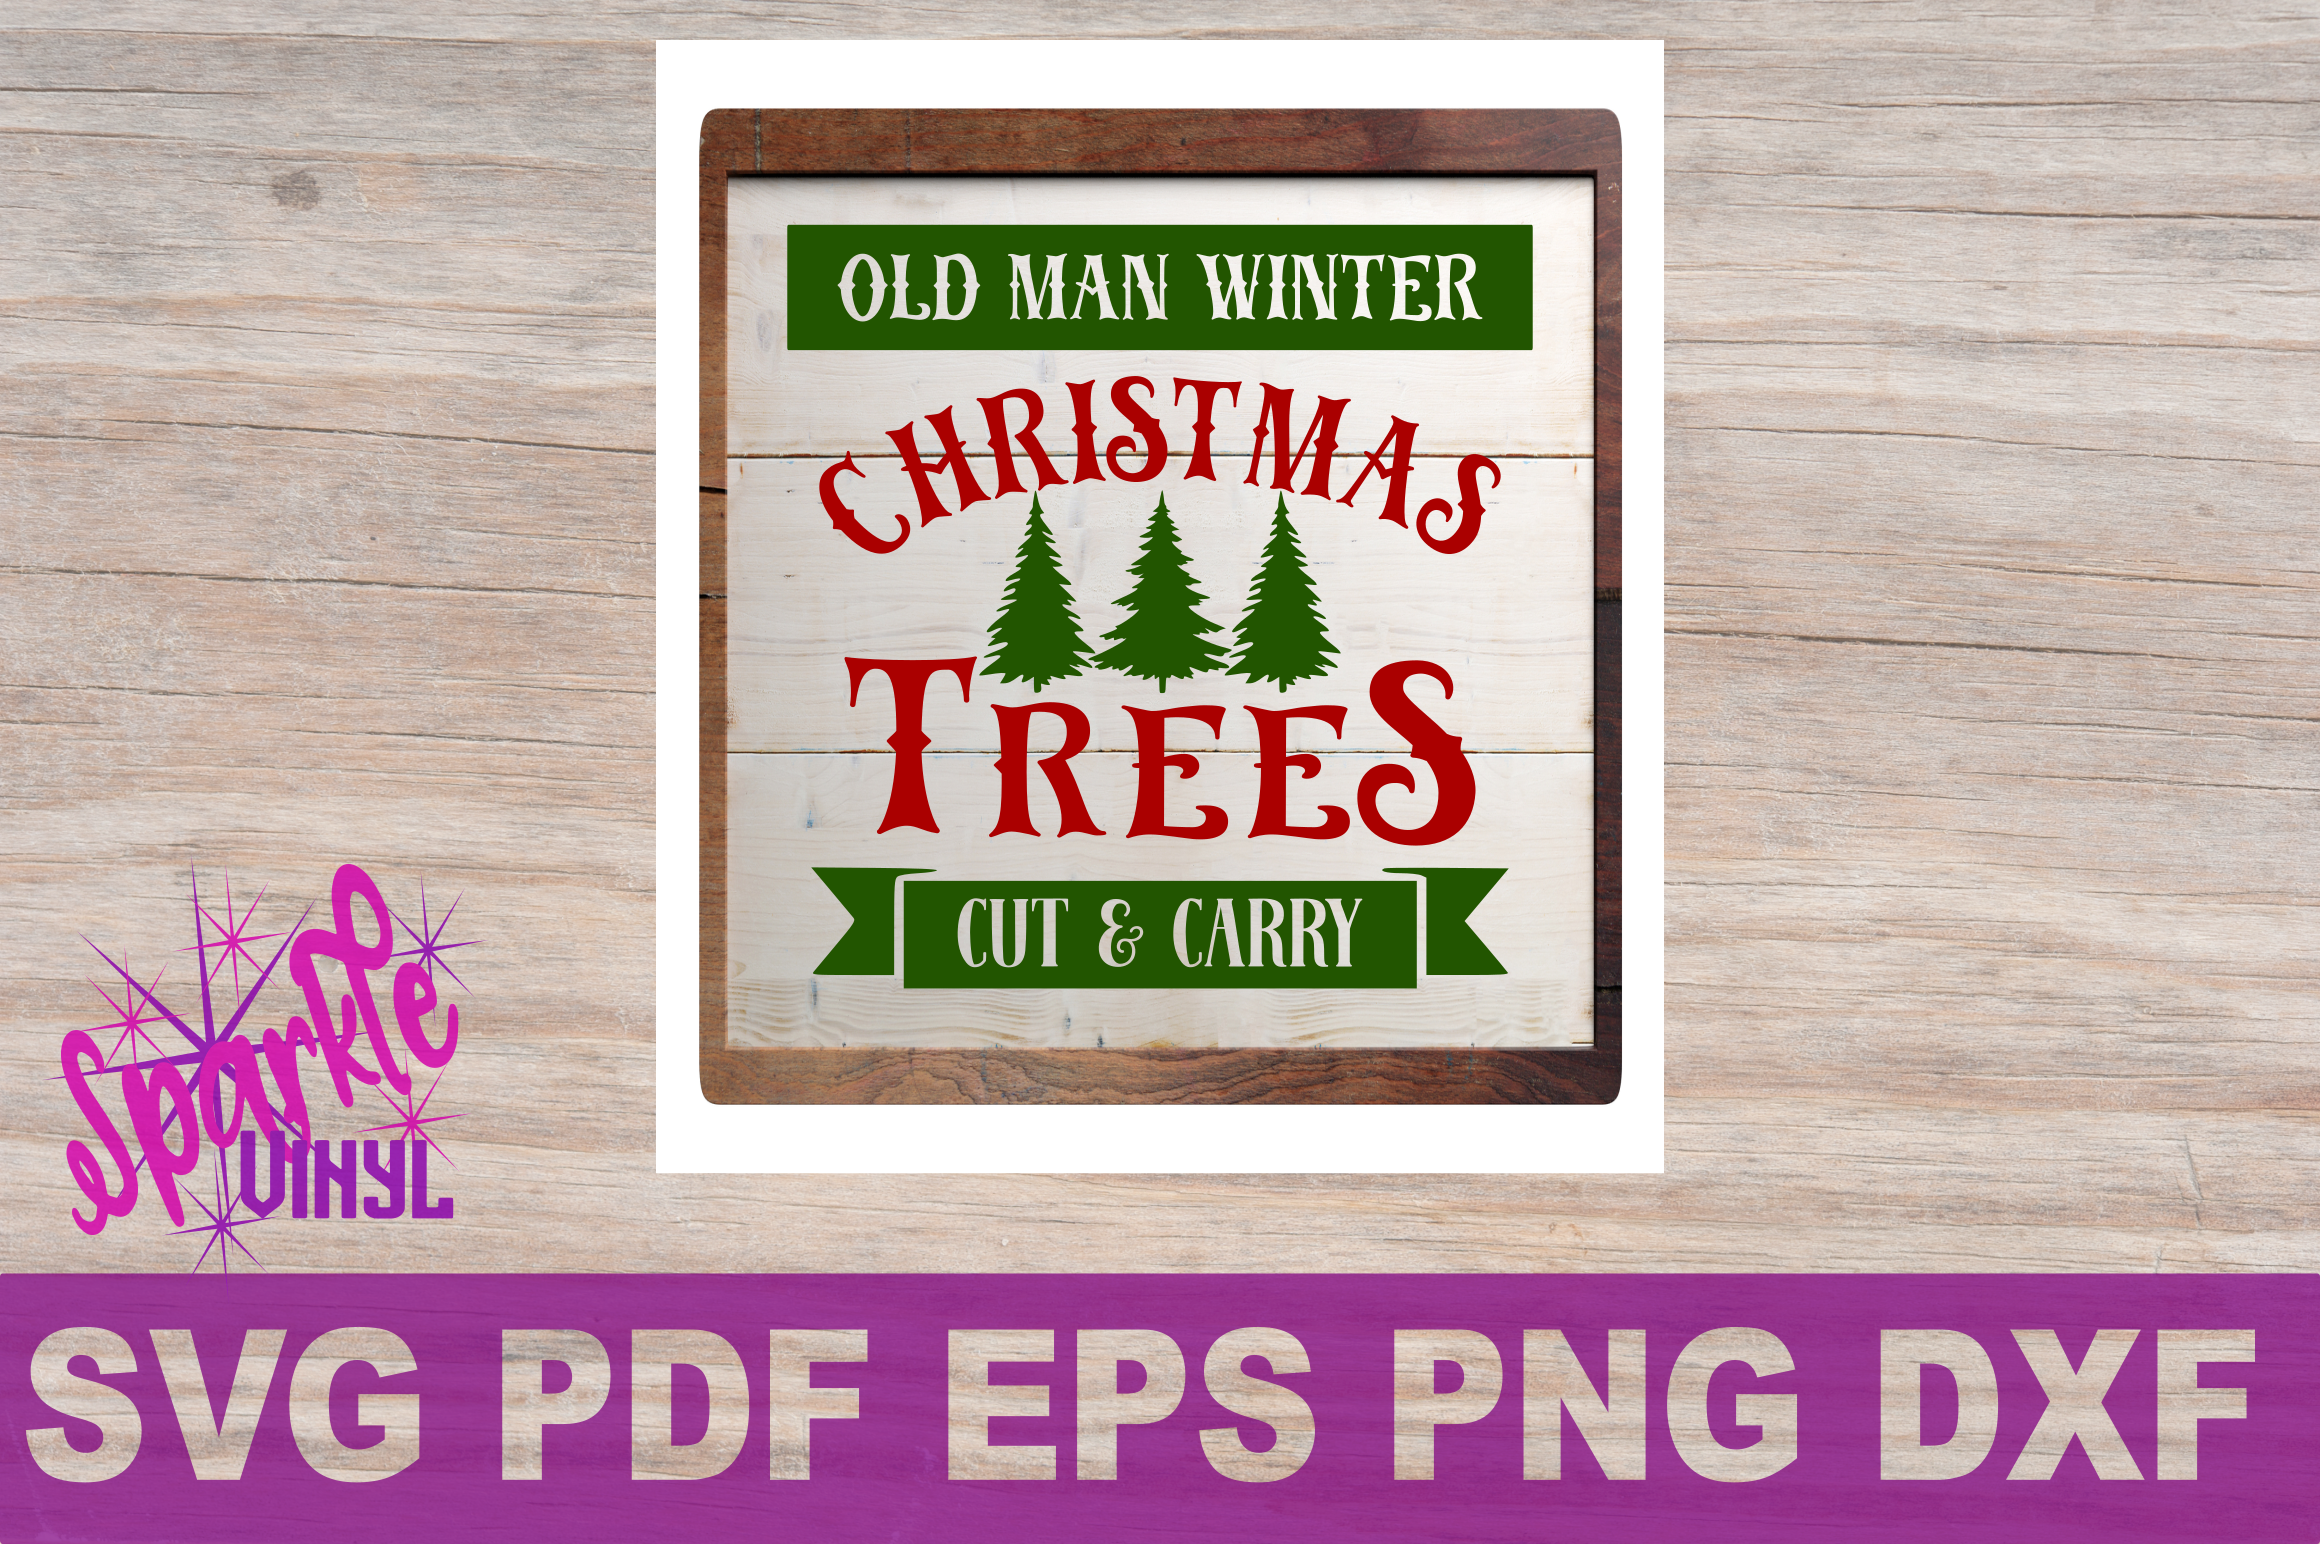 Svg Christmas Sign Stencil Bundle printable svg dxf png pdf esp files for cricut or silhouette Merry Christmas Trees Sold here Mistletoe svg example image 7